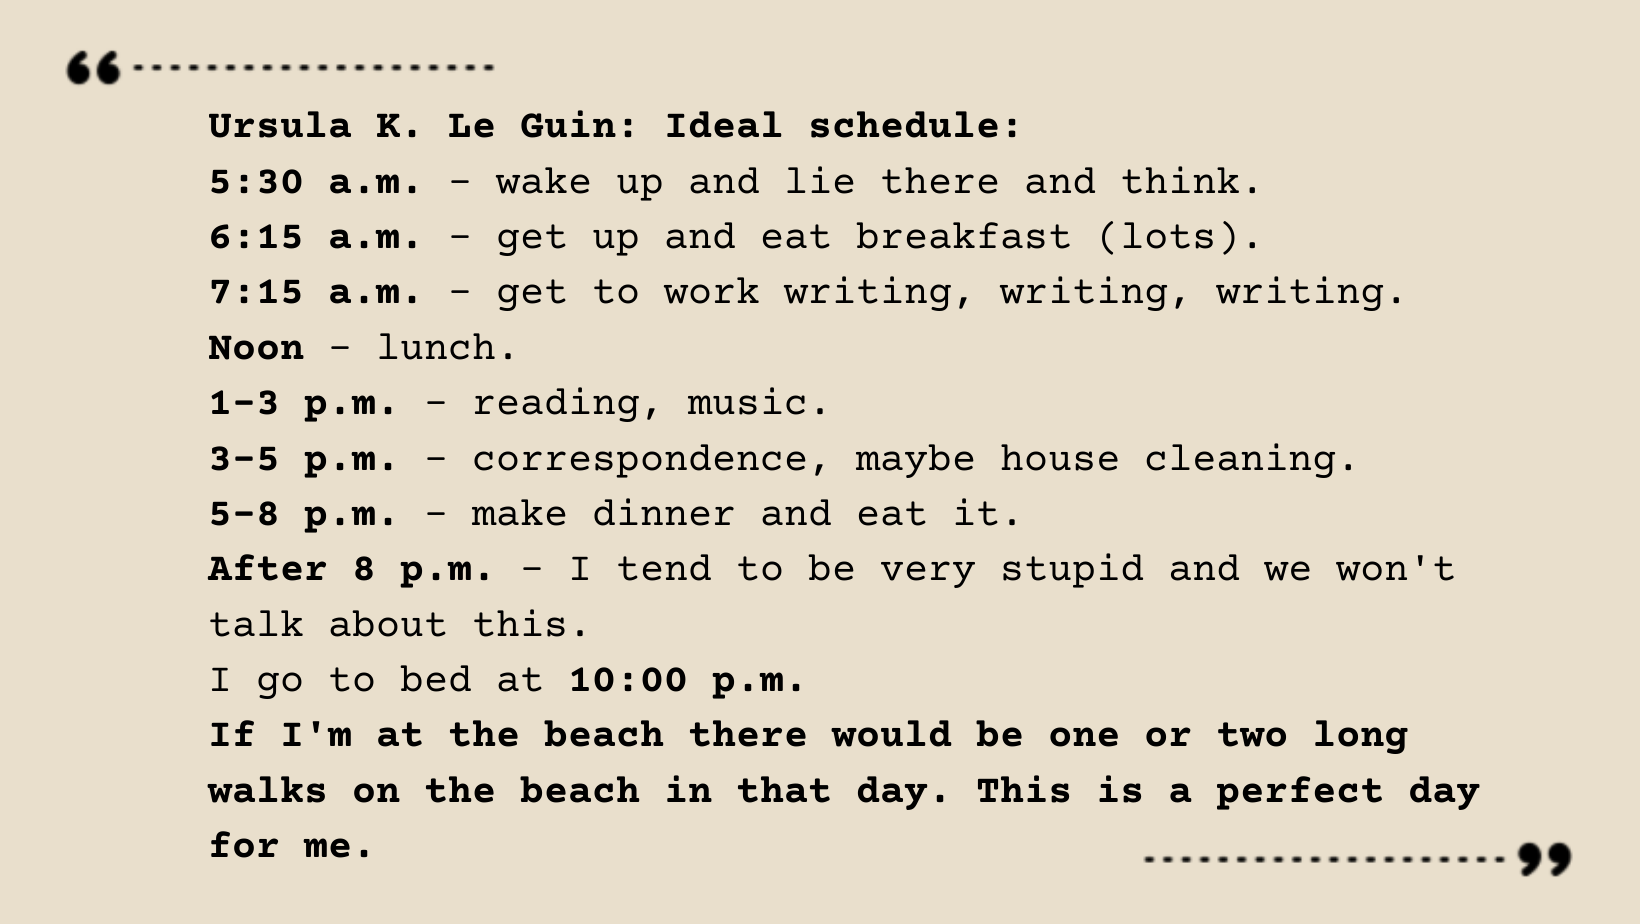 Ursula K. Le Guin's schedule, found in text here: https://web.archive.org/web/20190805205550/http://www.slawcio.com/ursula.ht